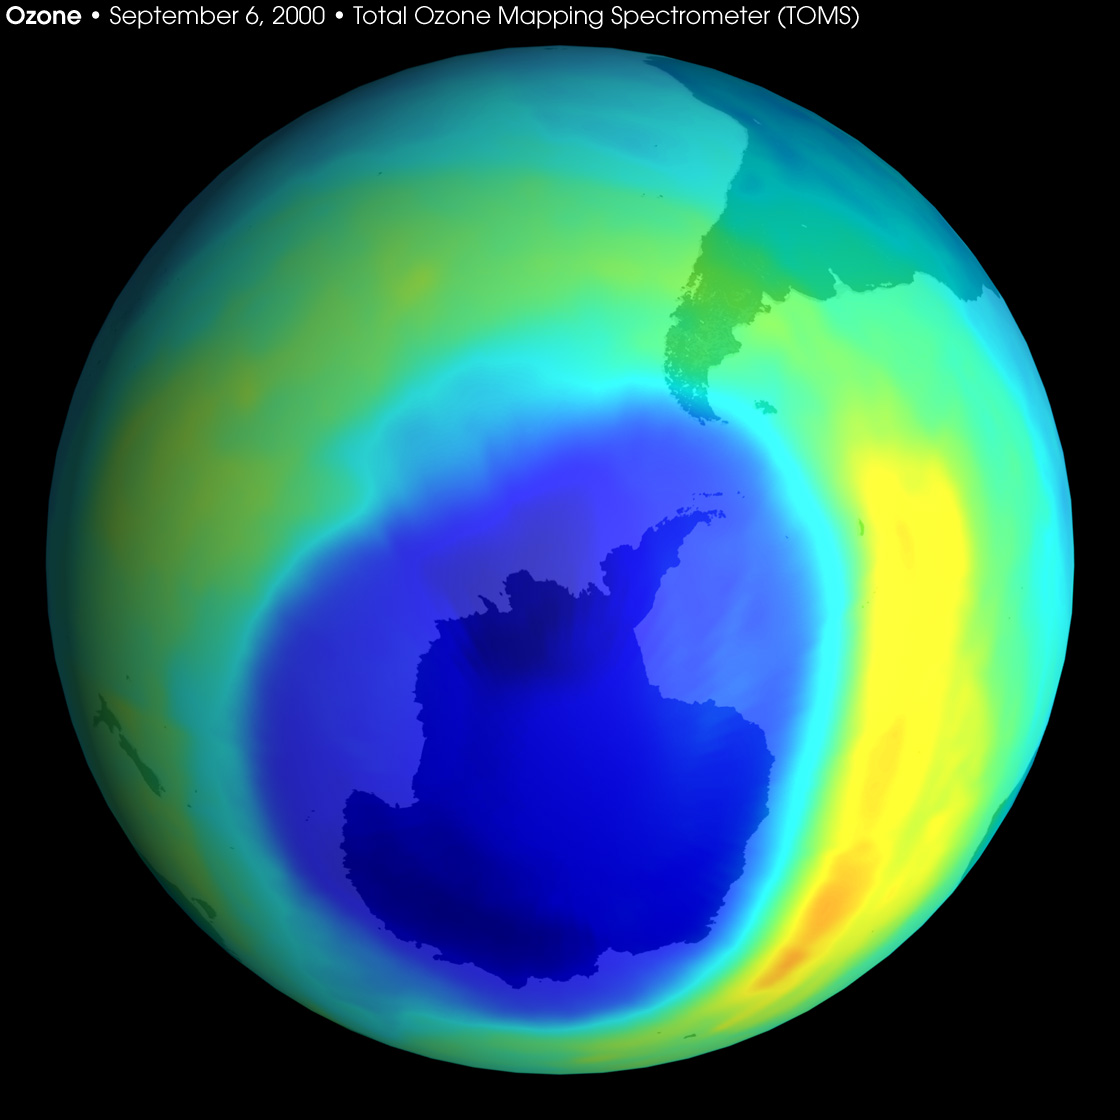 nasa ozone hole - photo #17